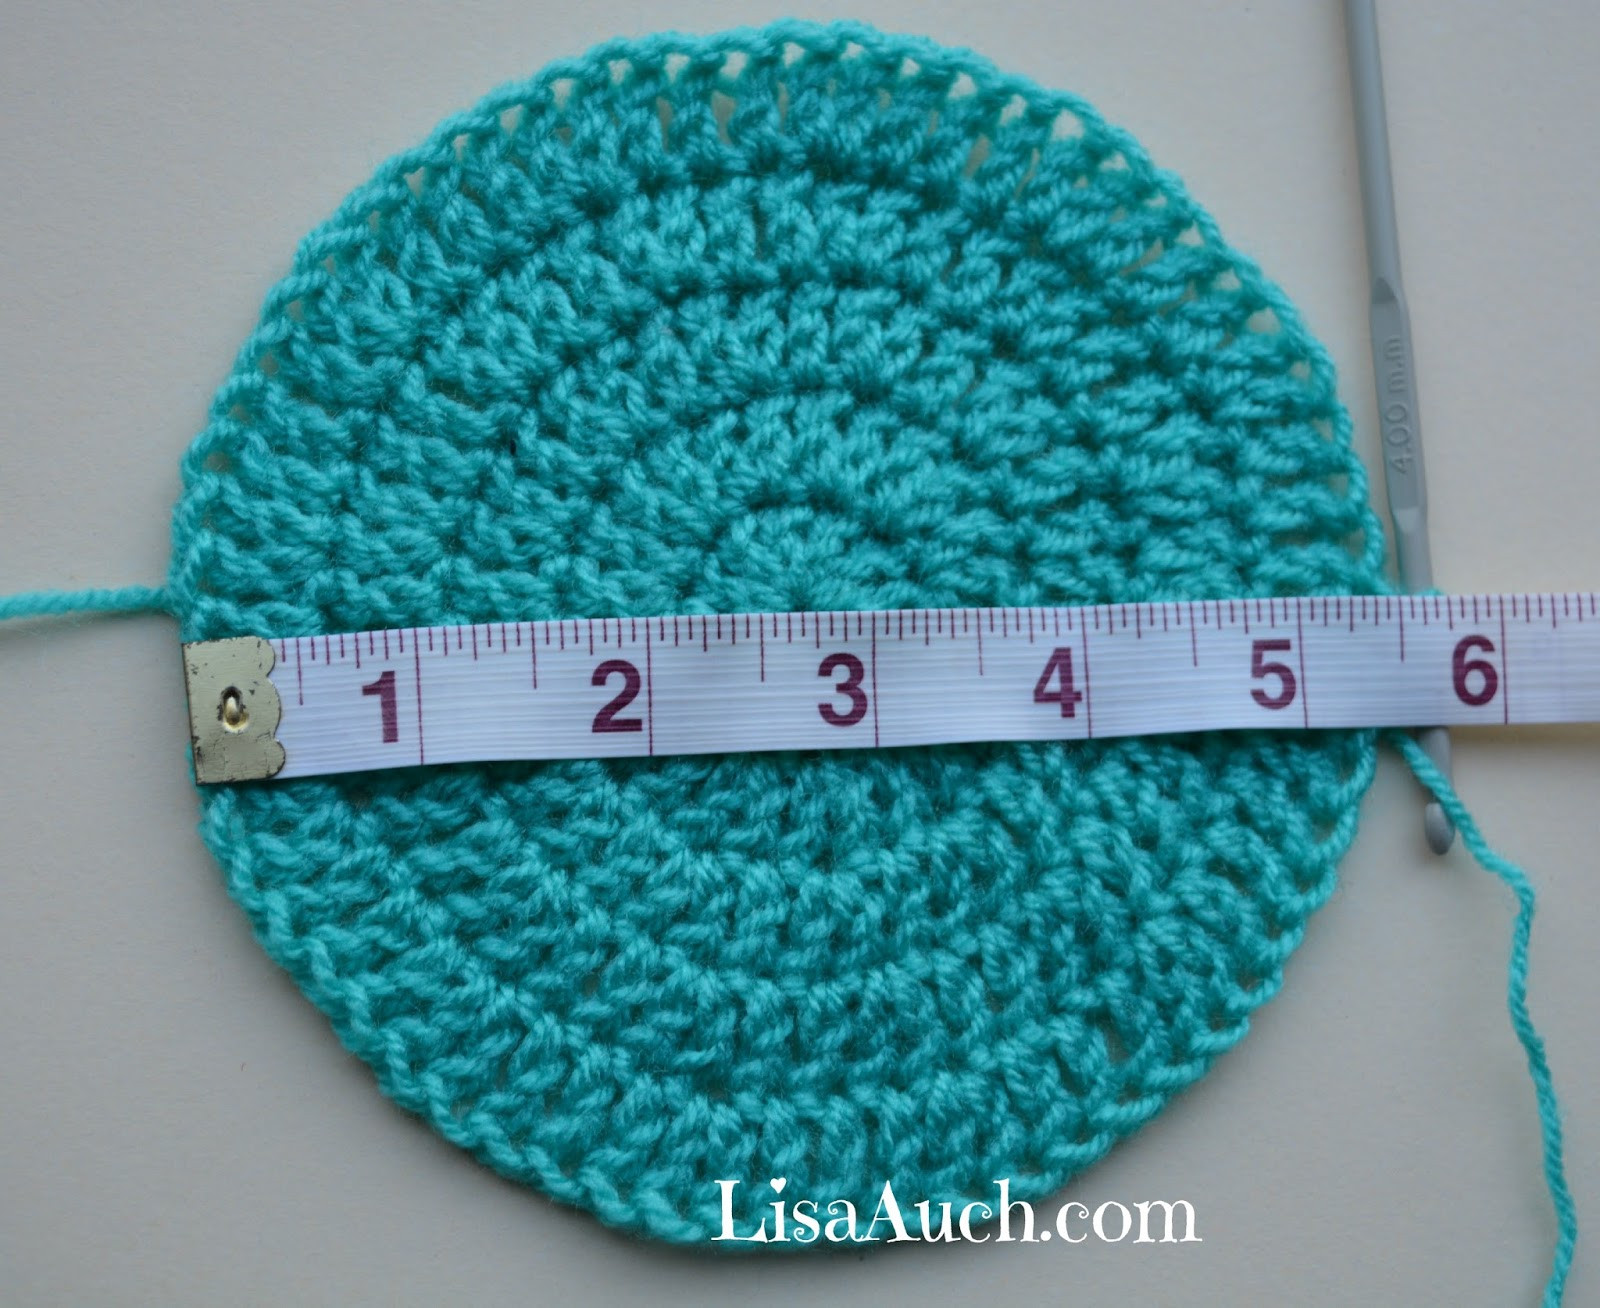 Awesome All Crochet Patterns All Free Crochet Patterns Of Wonderful 50 Pictures All Free Crochet Patterns